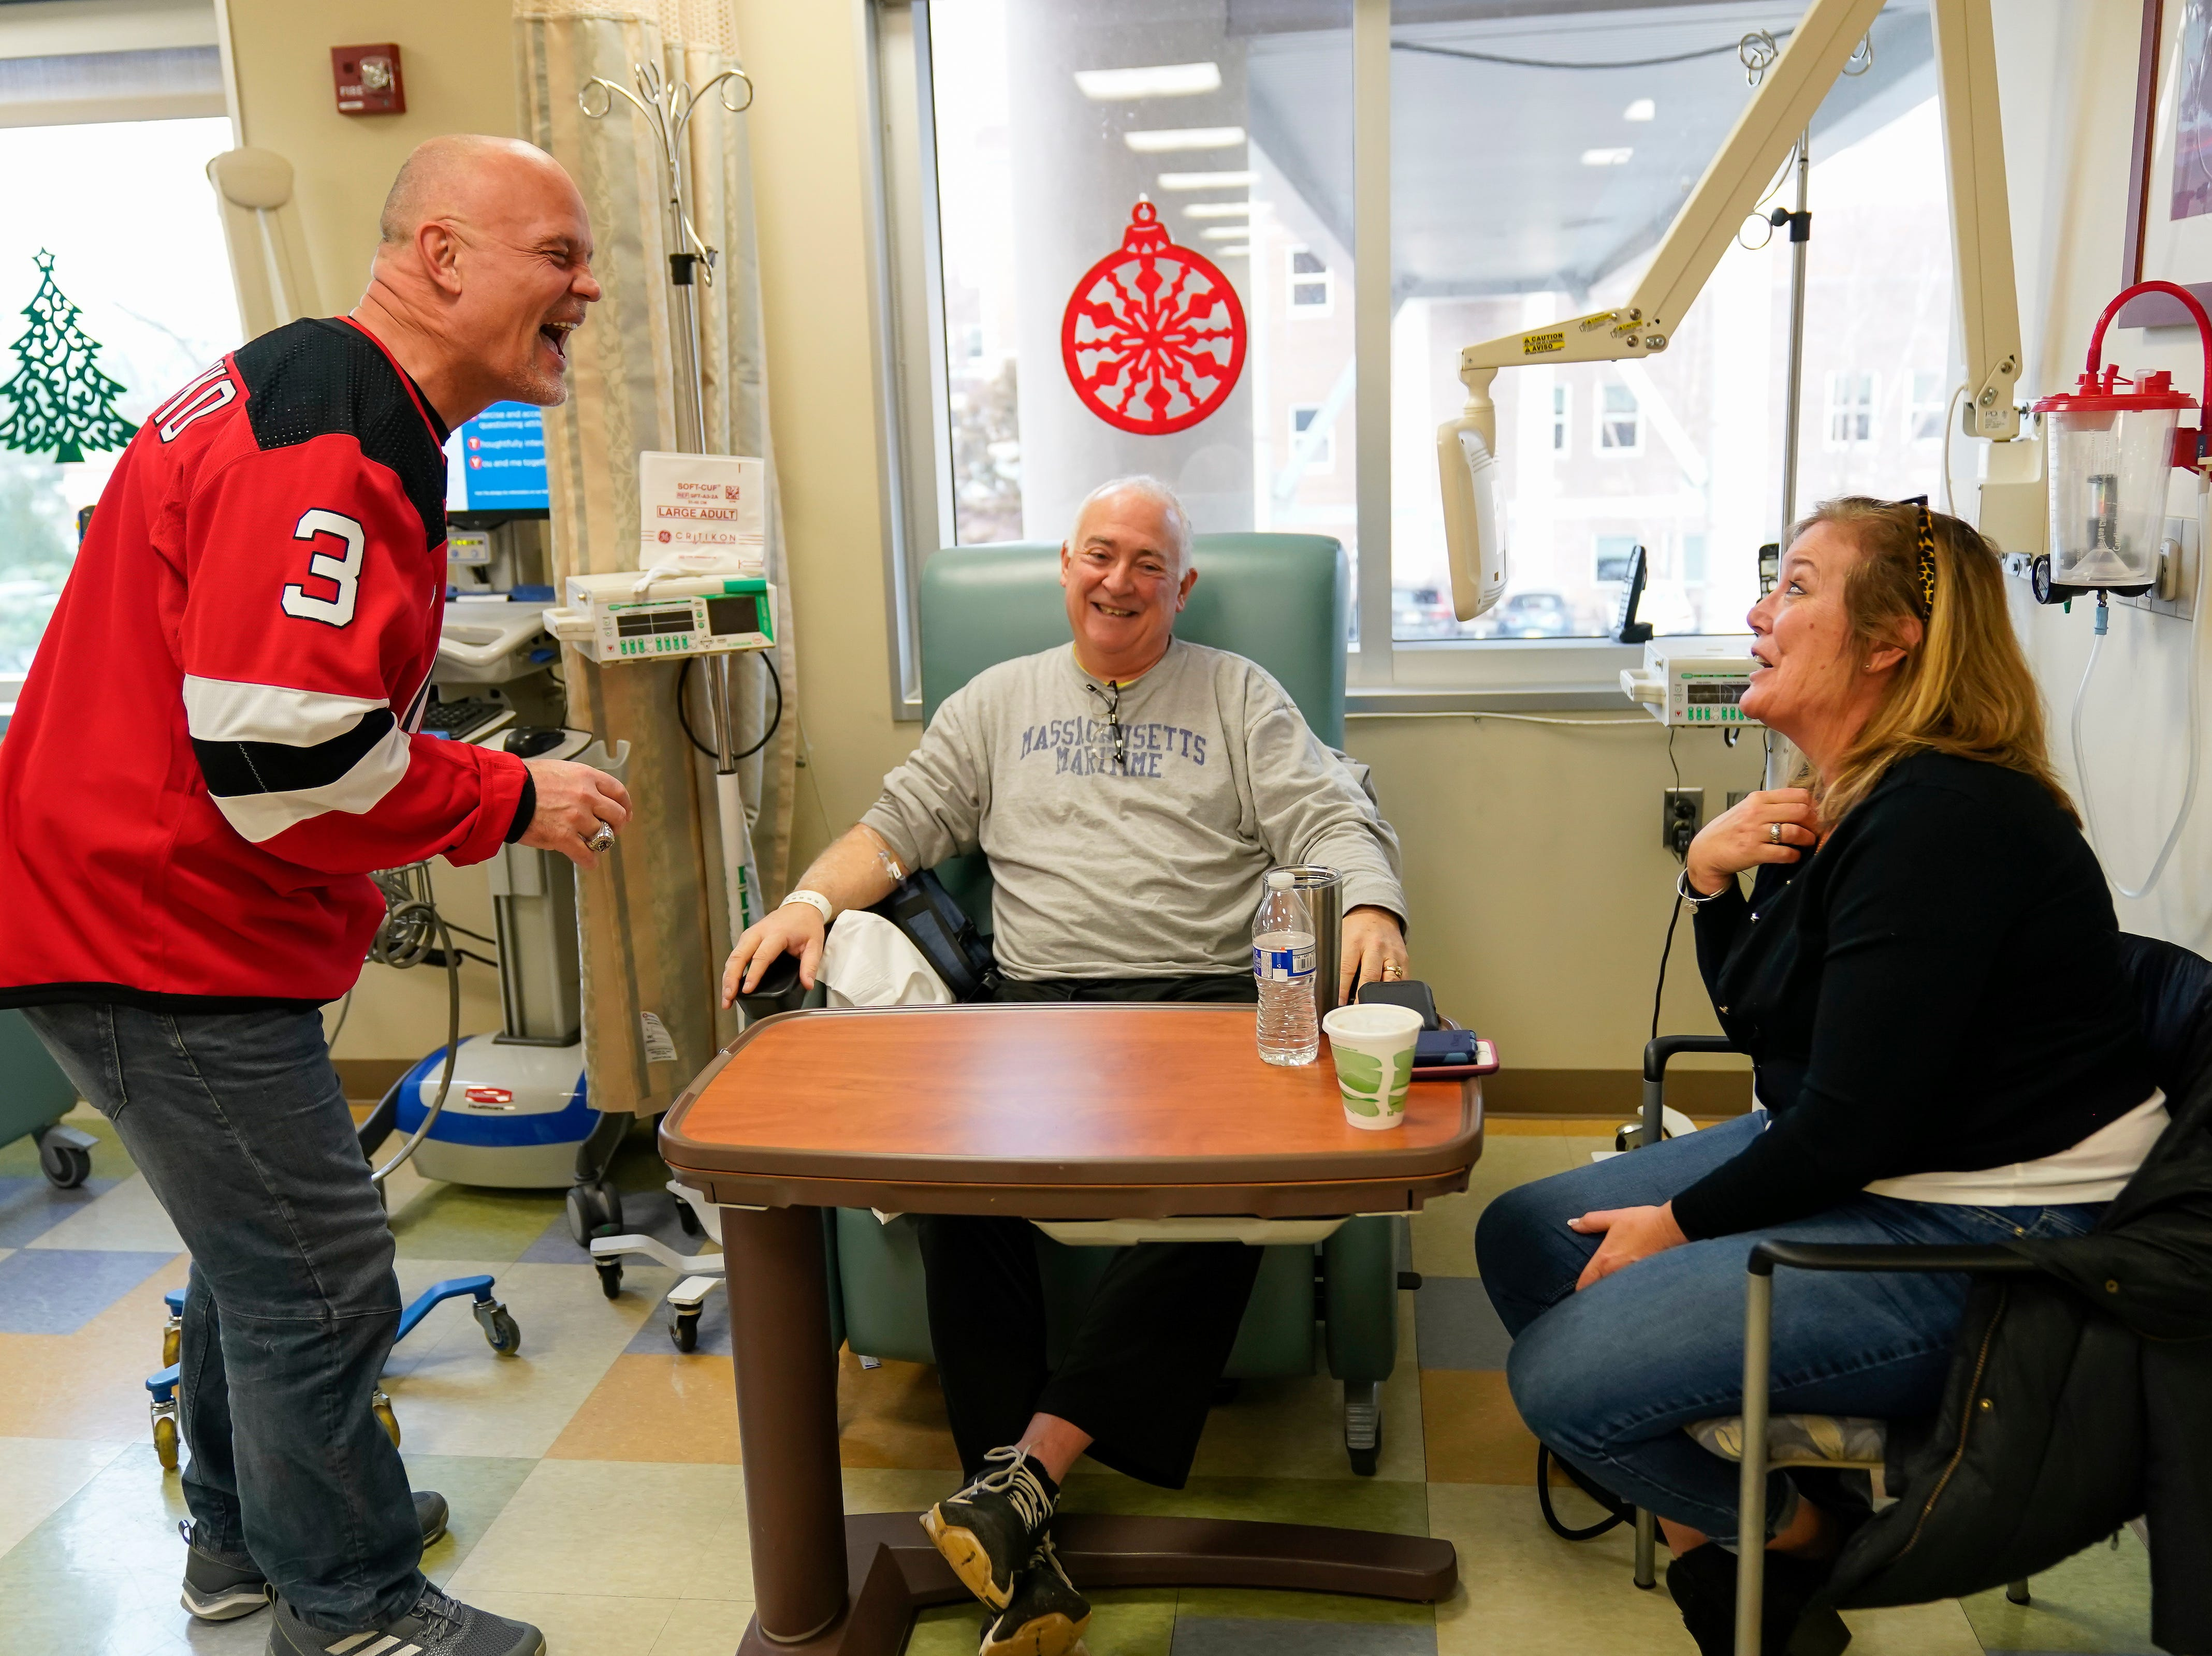 Three-time New Jersey Devils Stanley Cup winner Ken Danyeko was one of several Devils players, alumni and staff who visitedRWJ Barnabas Health sites Monday. At RWJUH Somerset, Daneyko charmed visitors, patients, such as Eddie and Maggie Smith of Bridgewater, and staff alike visiting several oncology units at both the Steeplechase Cancer Center and Paul R.NardoniOncology Pavilionof the main hospital.